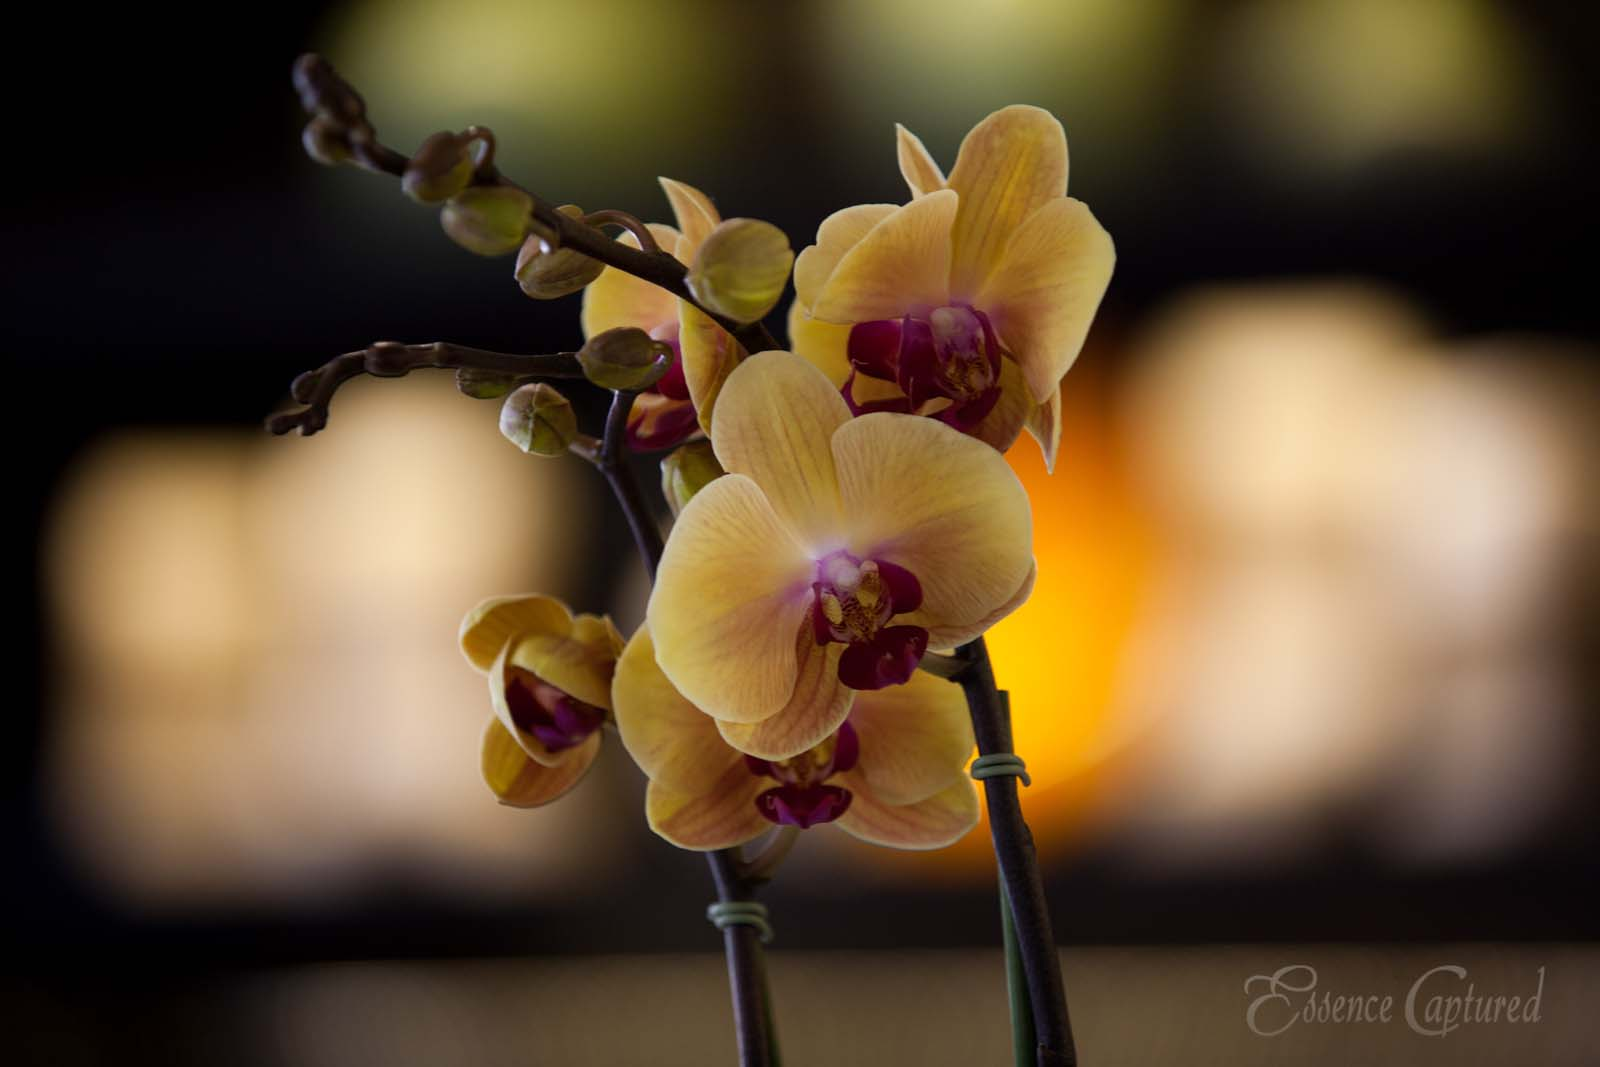 yellow orchid with red center blurry background